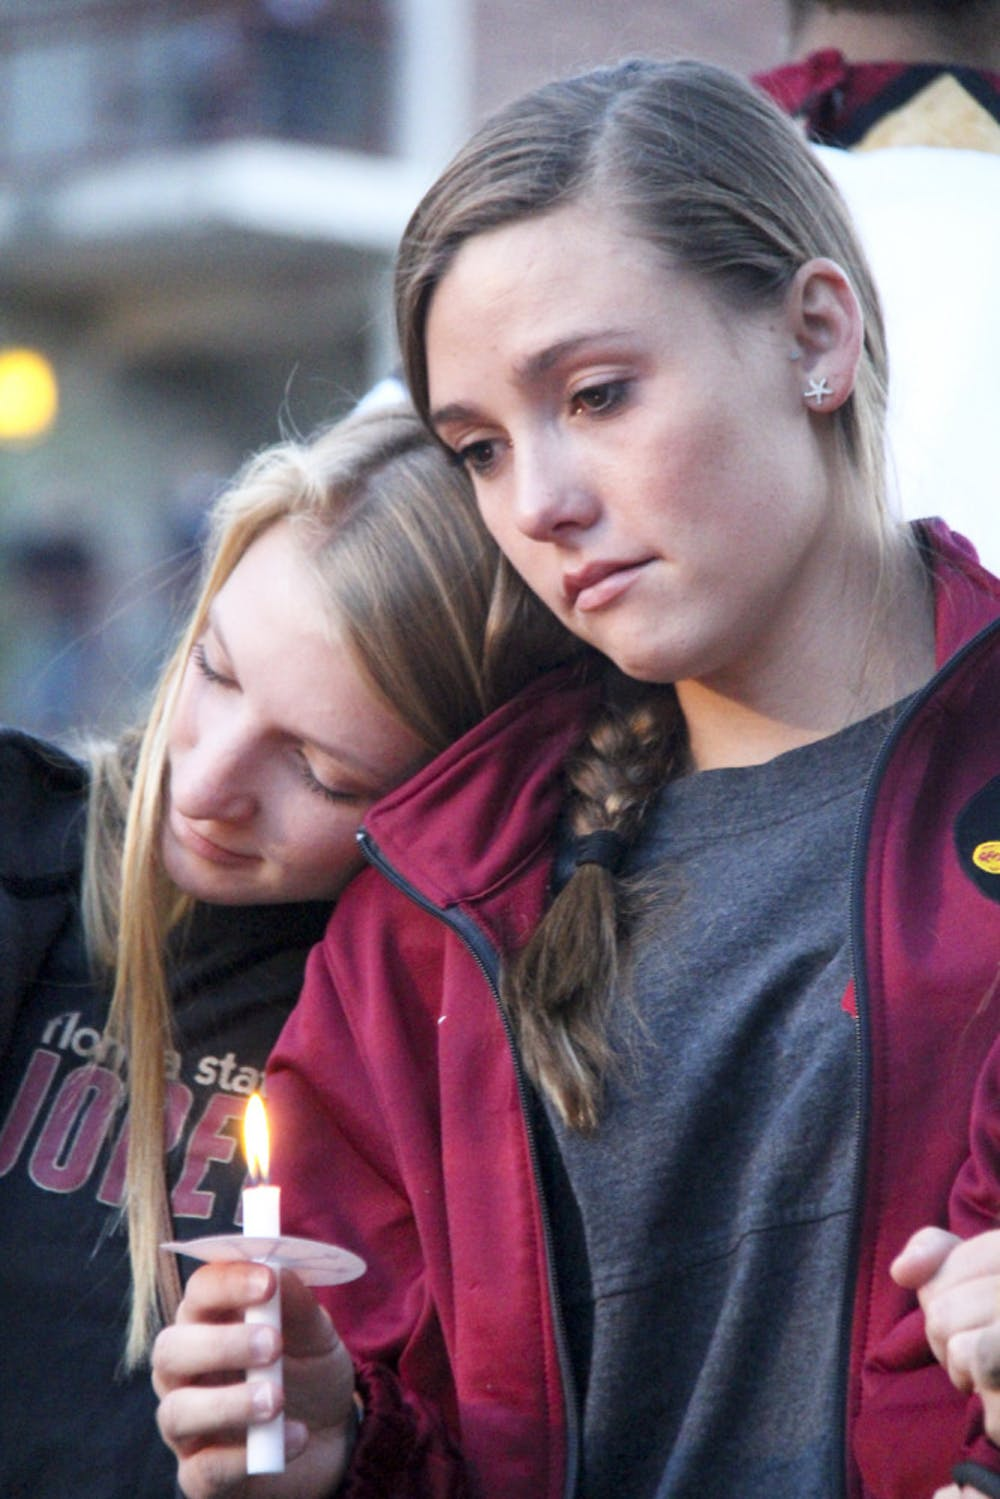 "<p class=""p1"">19-year-old FSU statistics freshman Olivia Heartsell, (left), leans on her teammate Amber Milner, a 22-year-old psychology junior, during the Gathering of Unity at the university's Integration Statue on Thursday evening.</p>"